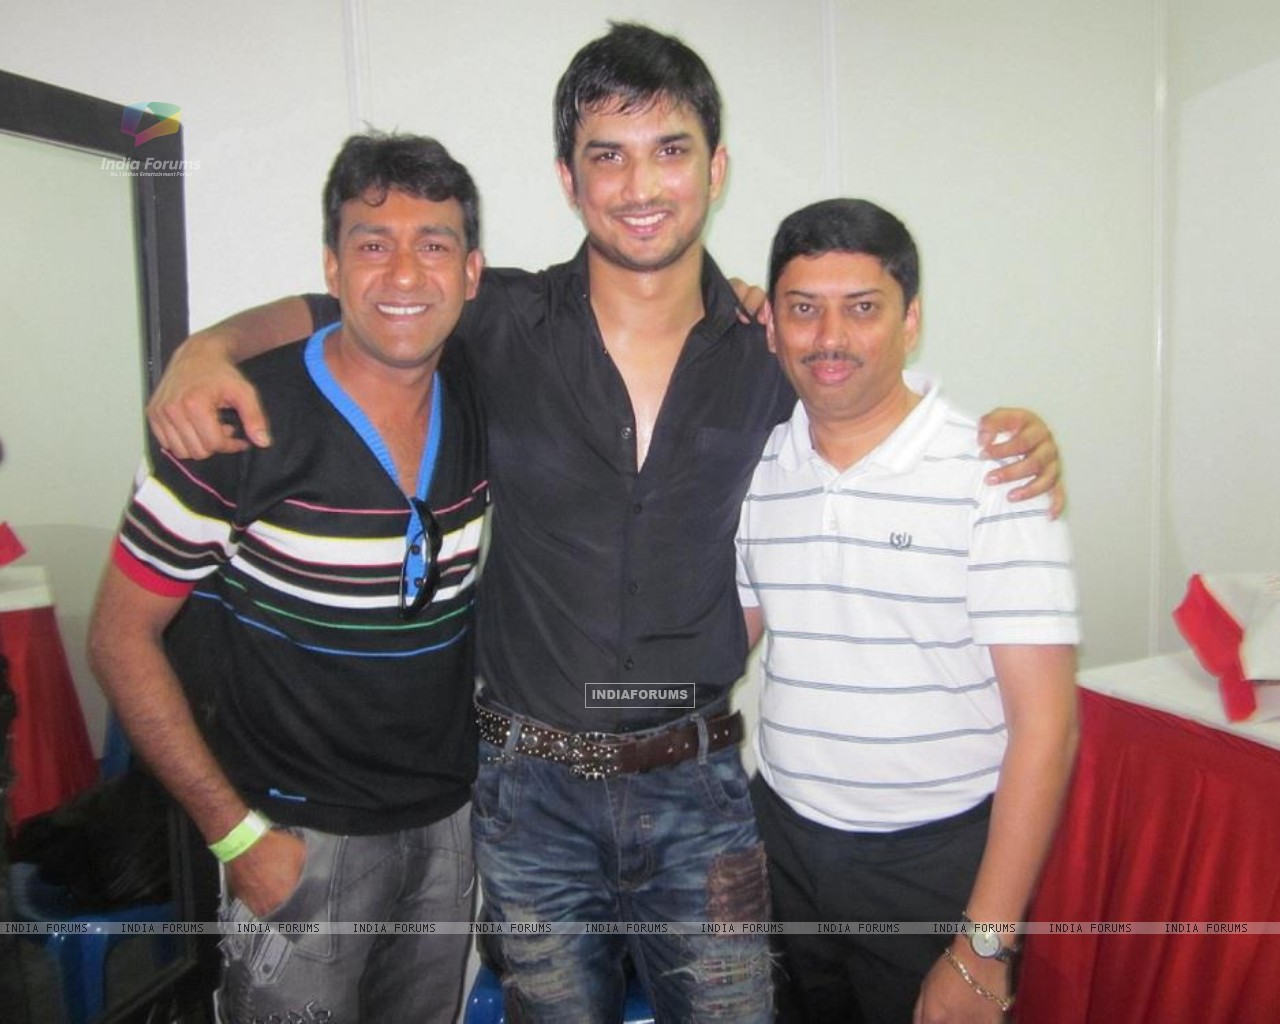 Sushant Singh Rajput With Event Managers At Bengluru Ganesh Utsav (197605) size:1280x1024